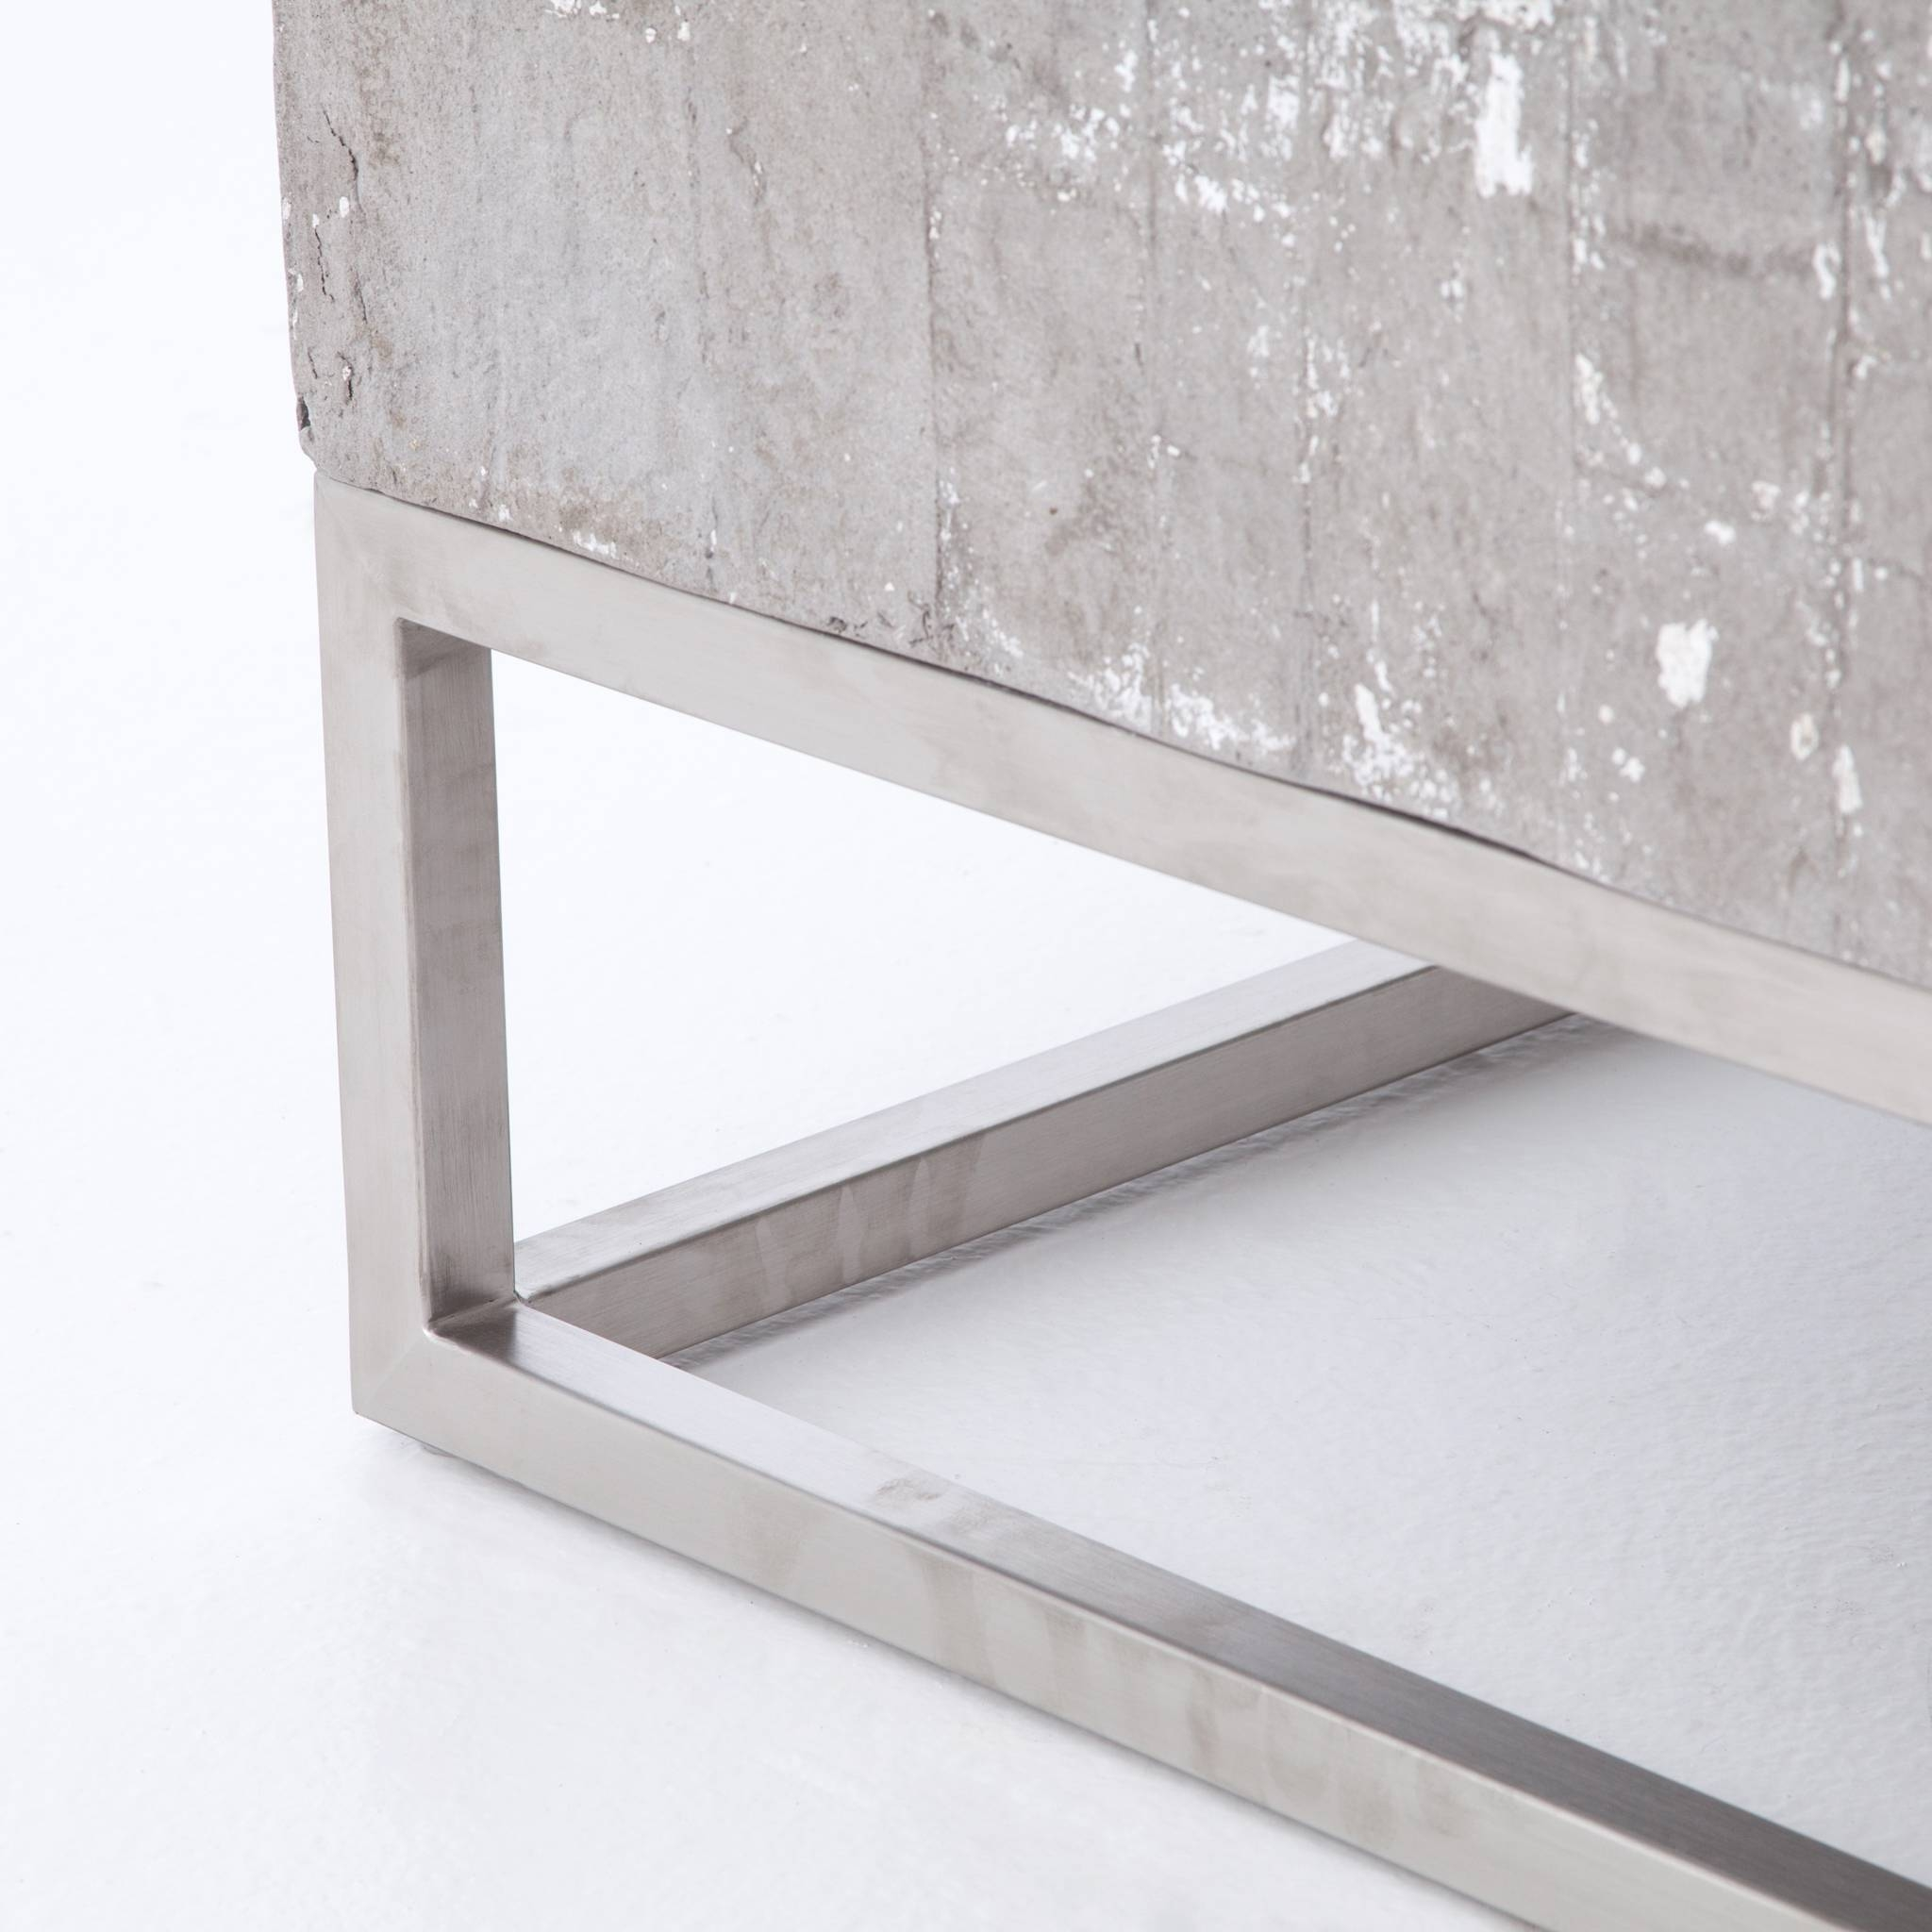 Concrete And Chrome Coffee Table | Industrial Home with Chrome Coffee Tables (Image 11 of 30)